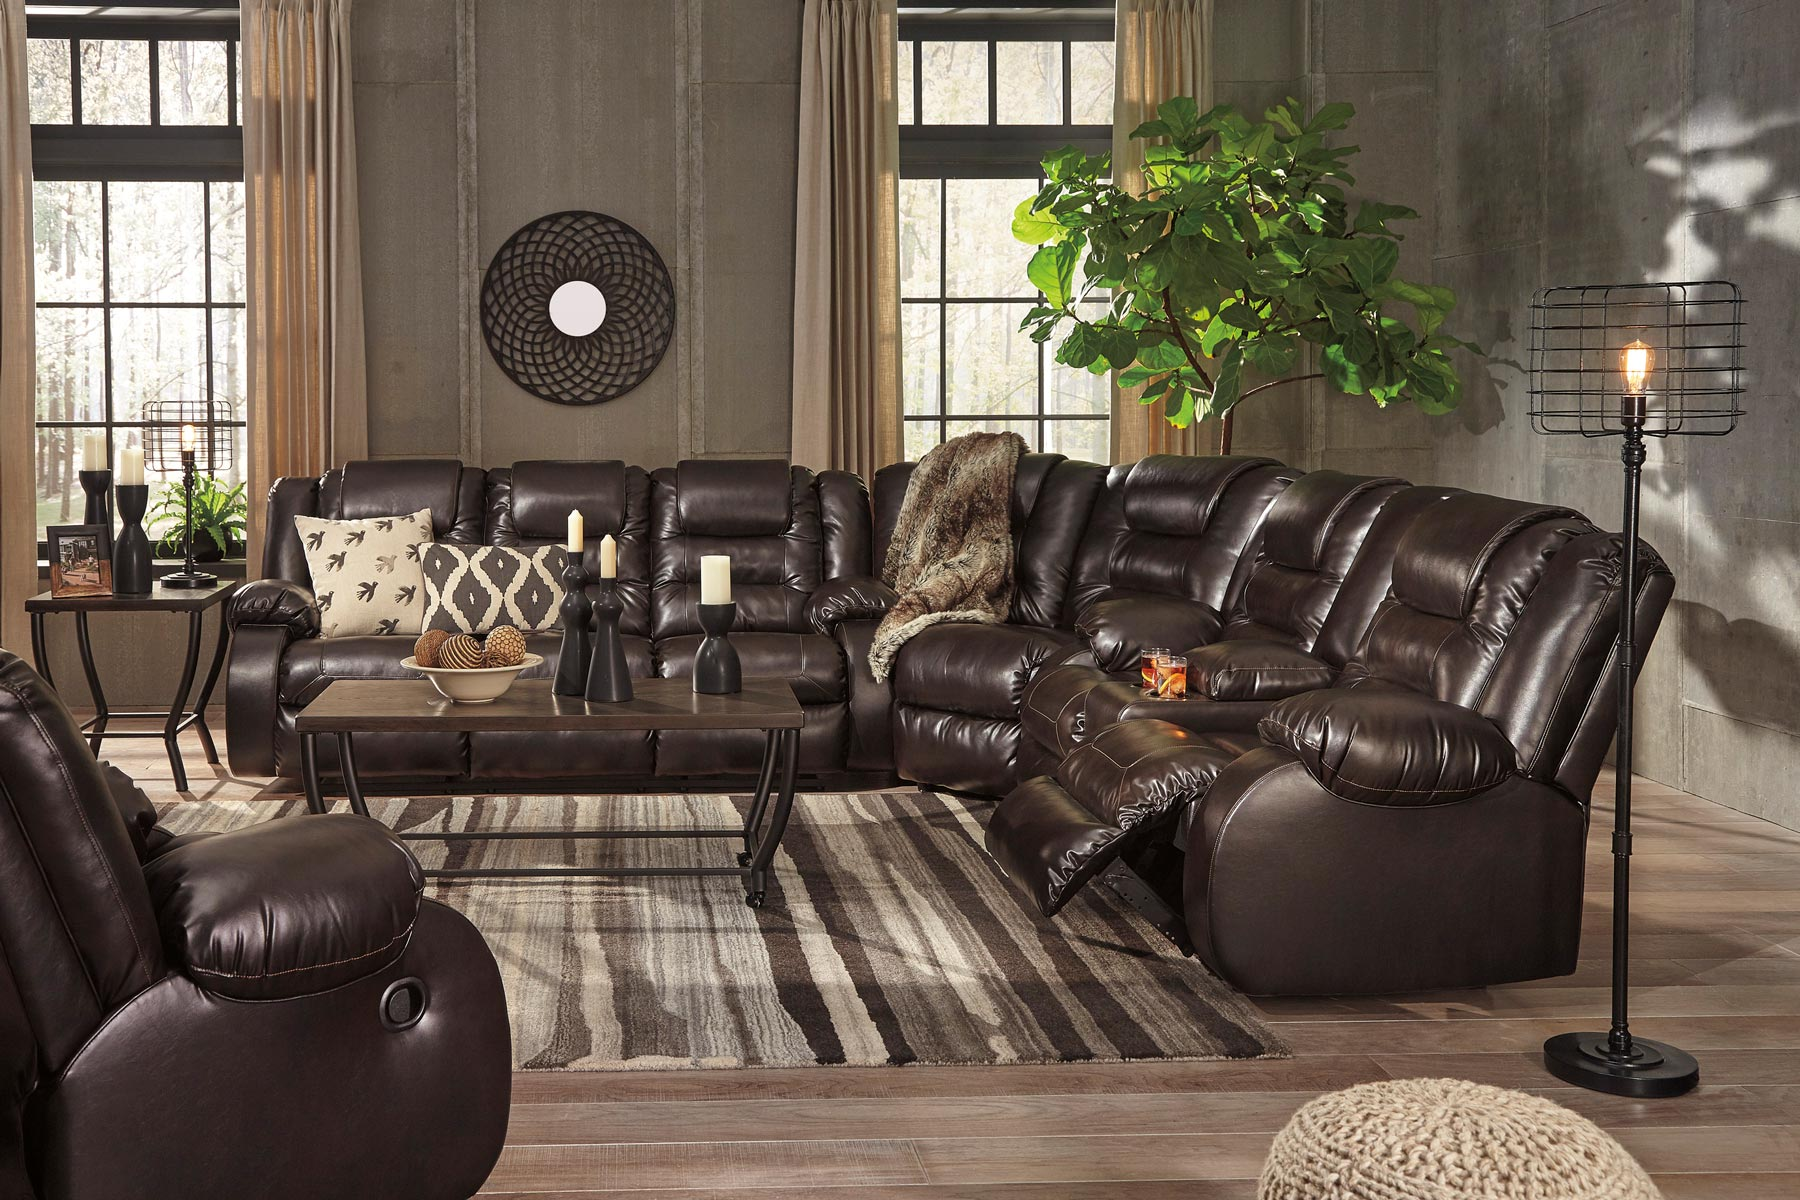 living room sets sectionals images of rooms with interior designs vacherie sectional set gonzalez furniture